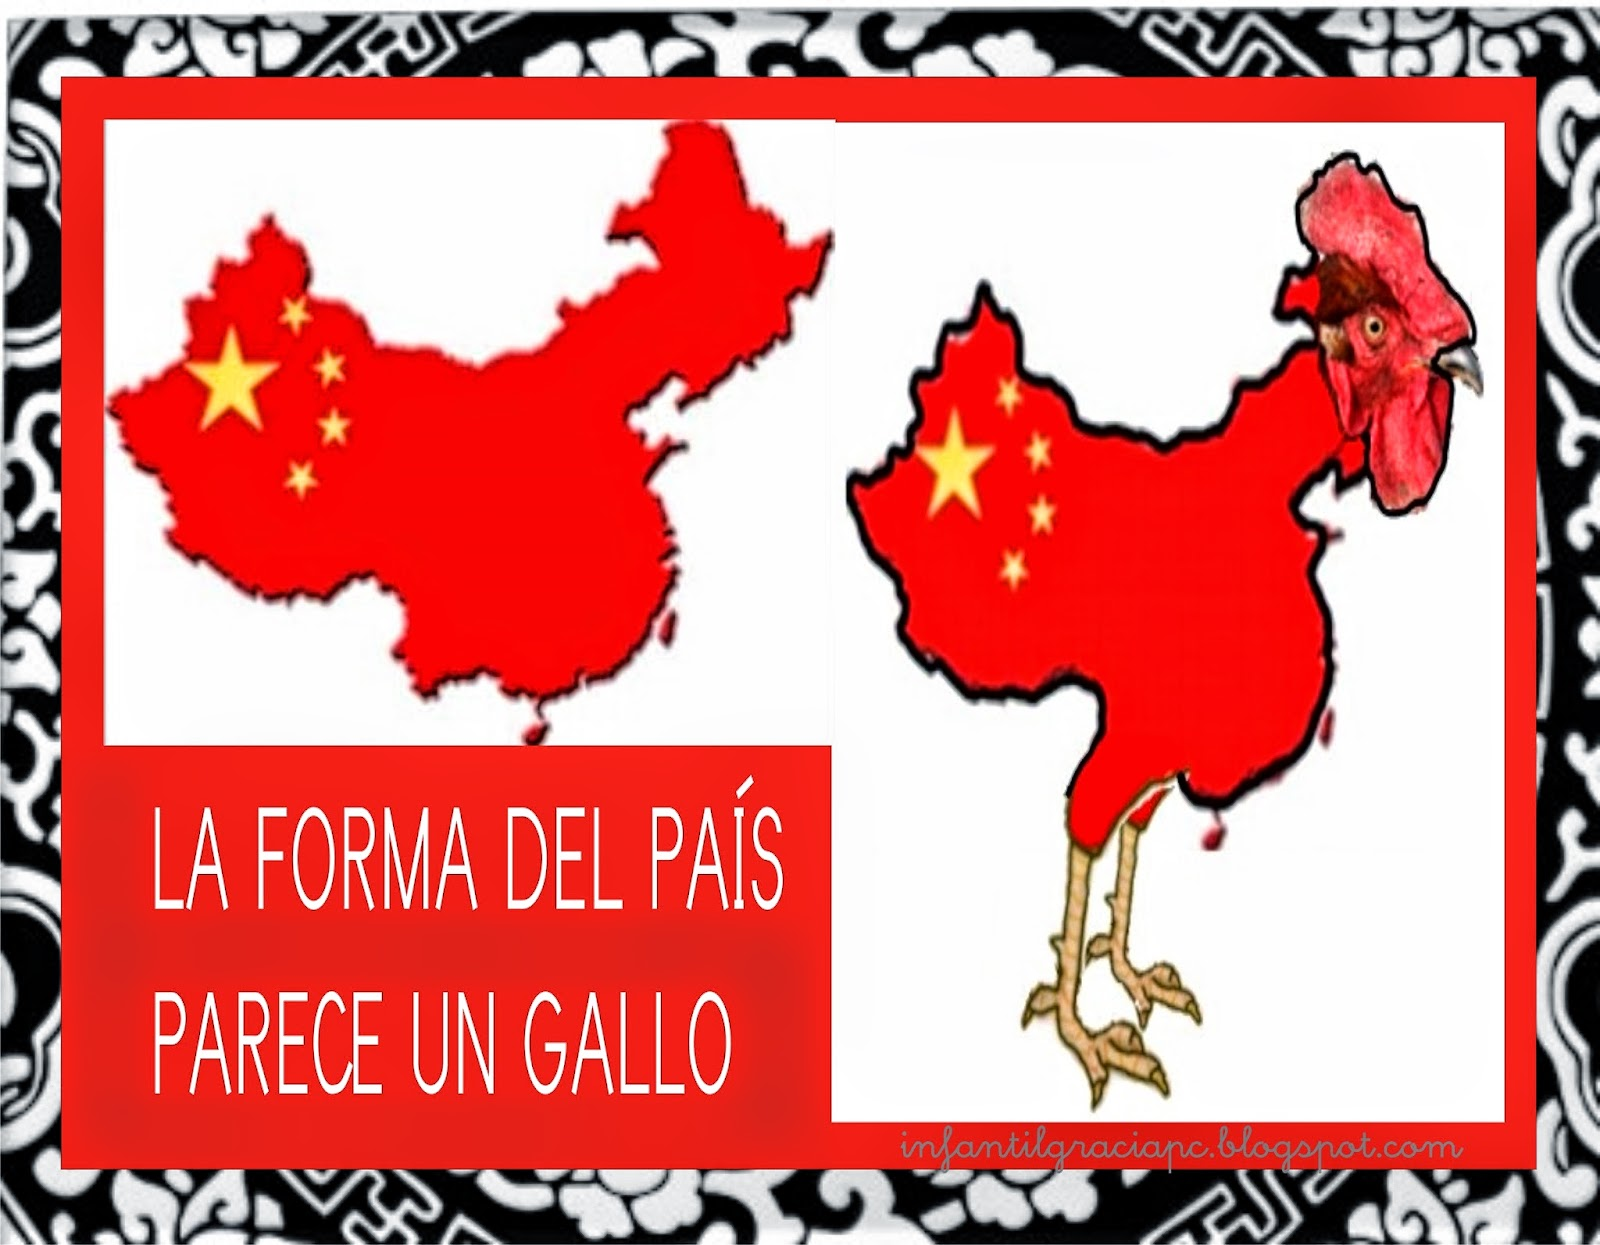 INFANTIL de GRACIA: CHINA MAPA, LOCALIZACIÓN Y BANDERA CHINA